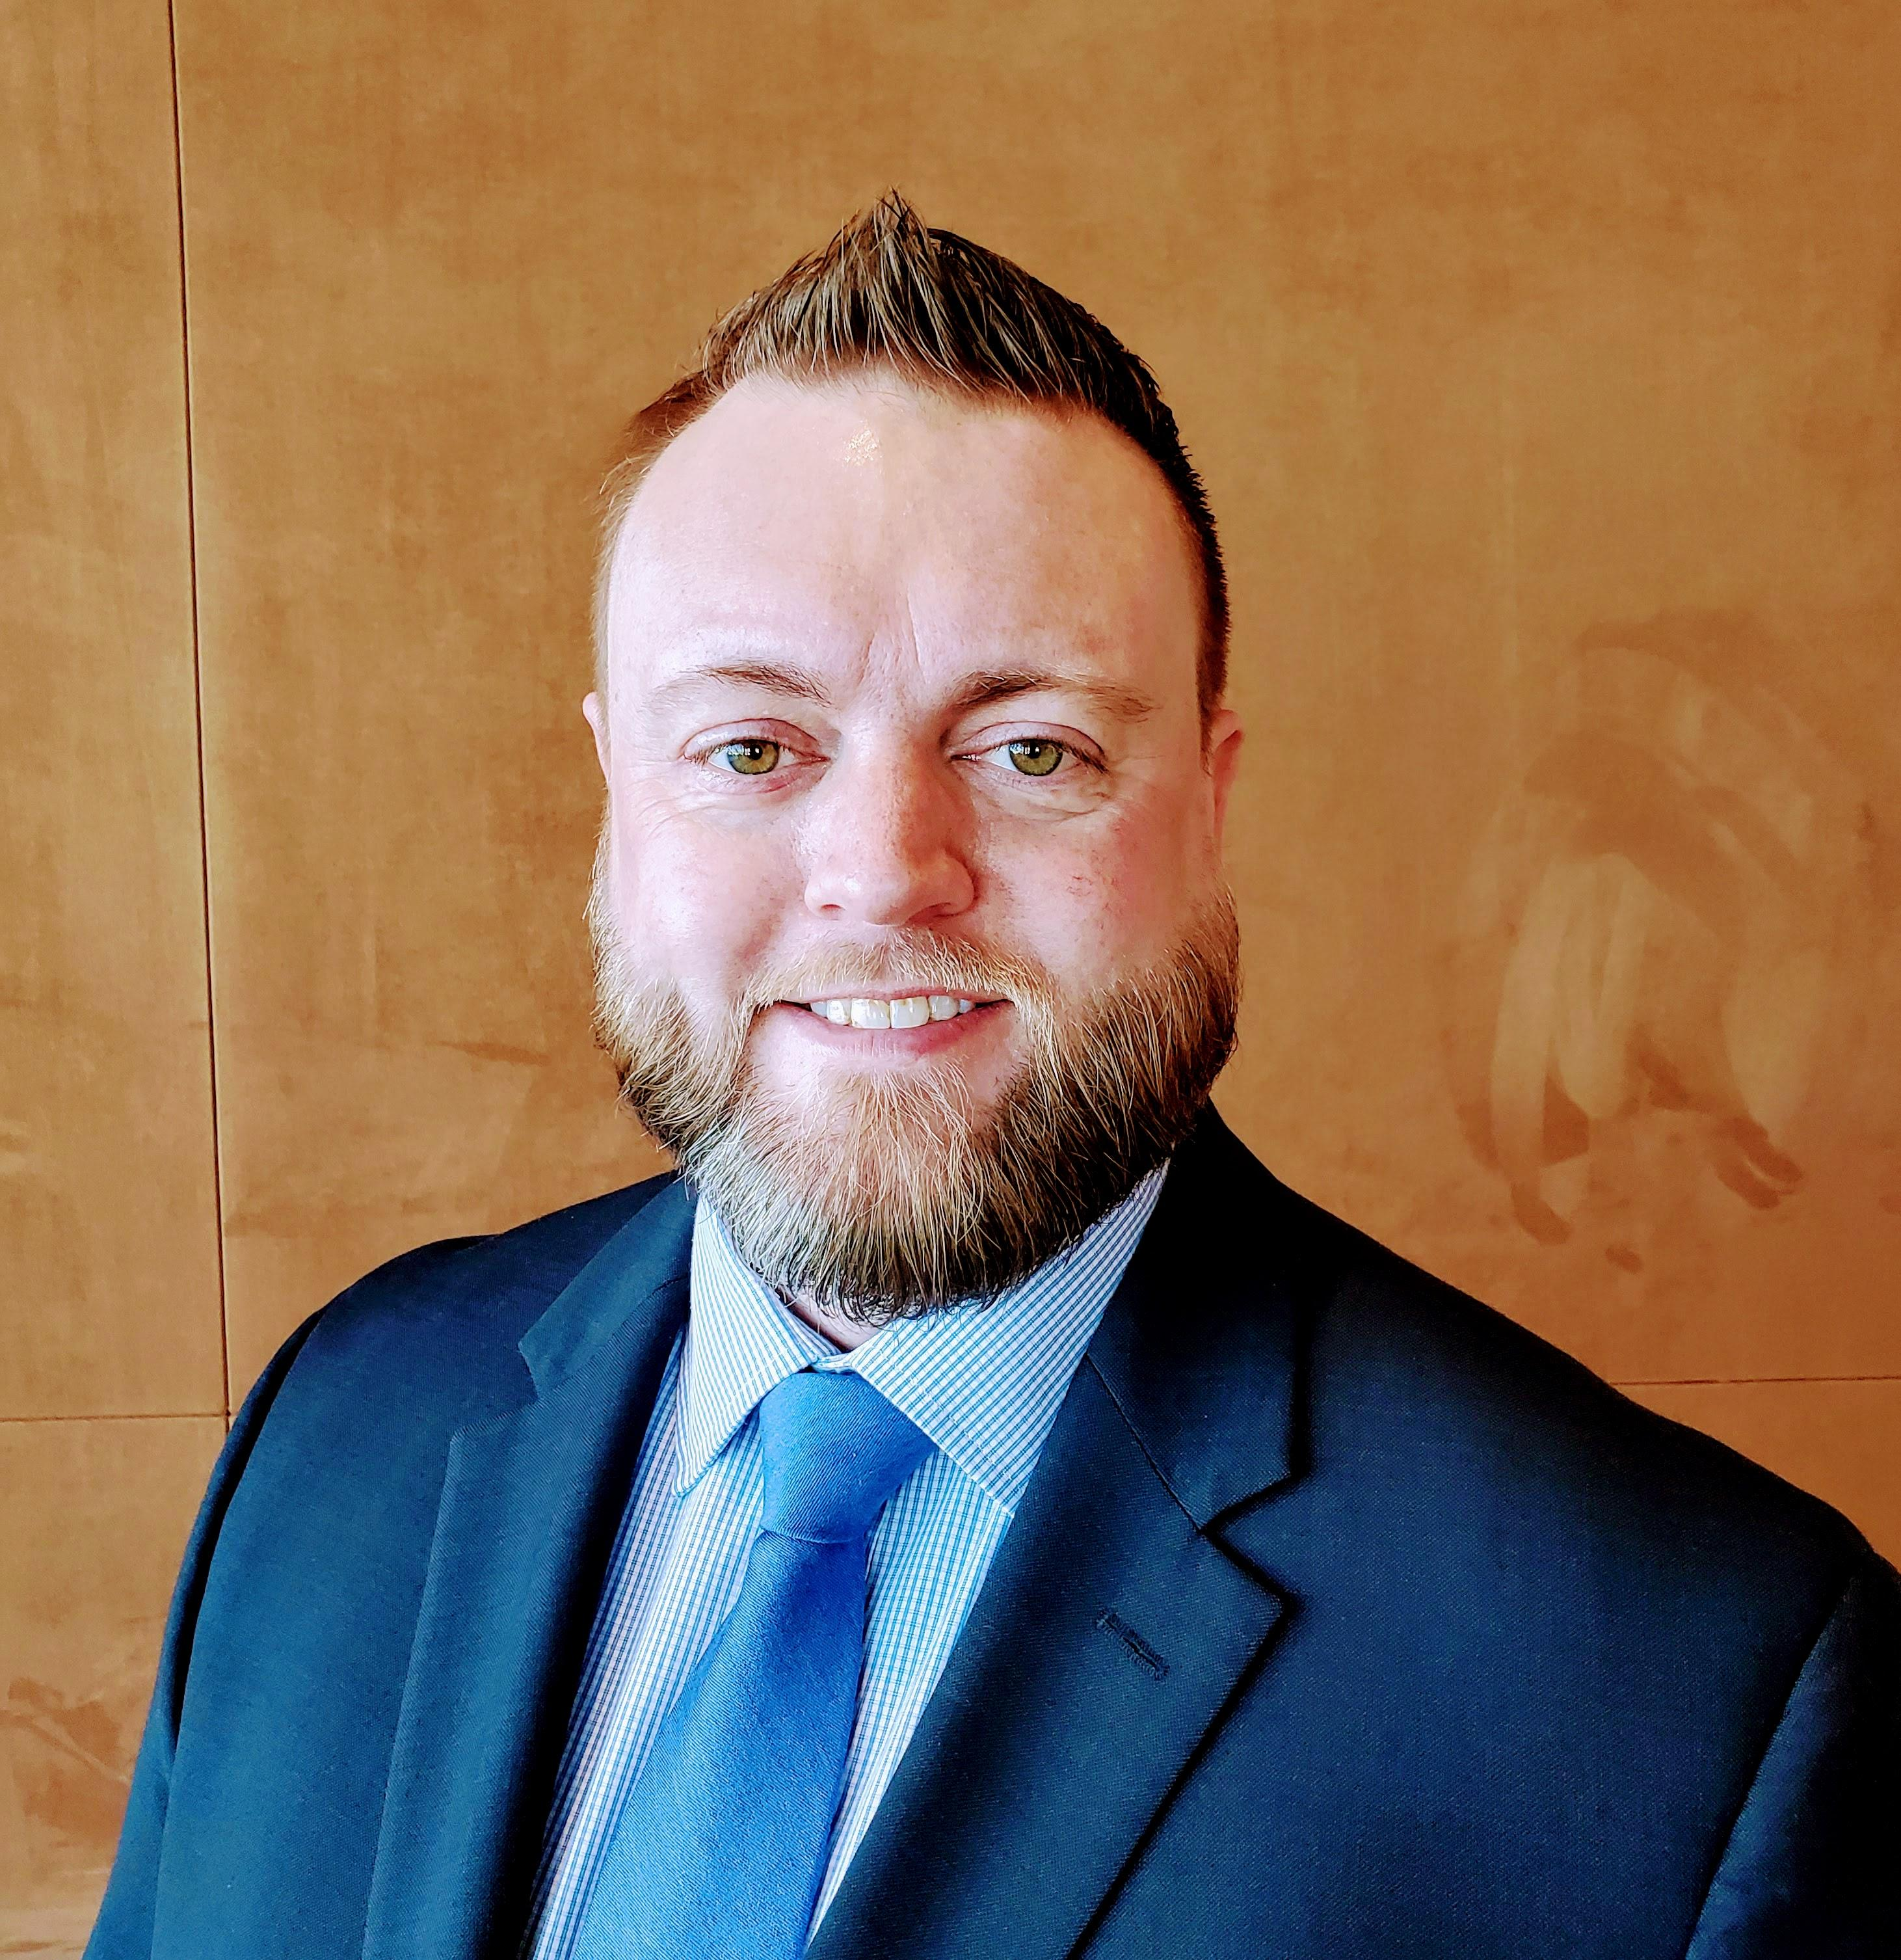 KYLE N. BOSWORTH  Your Financial Professional & Insurance Agent